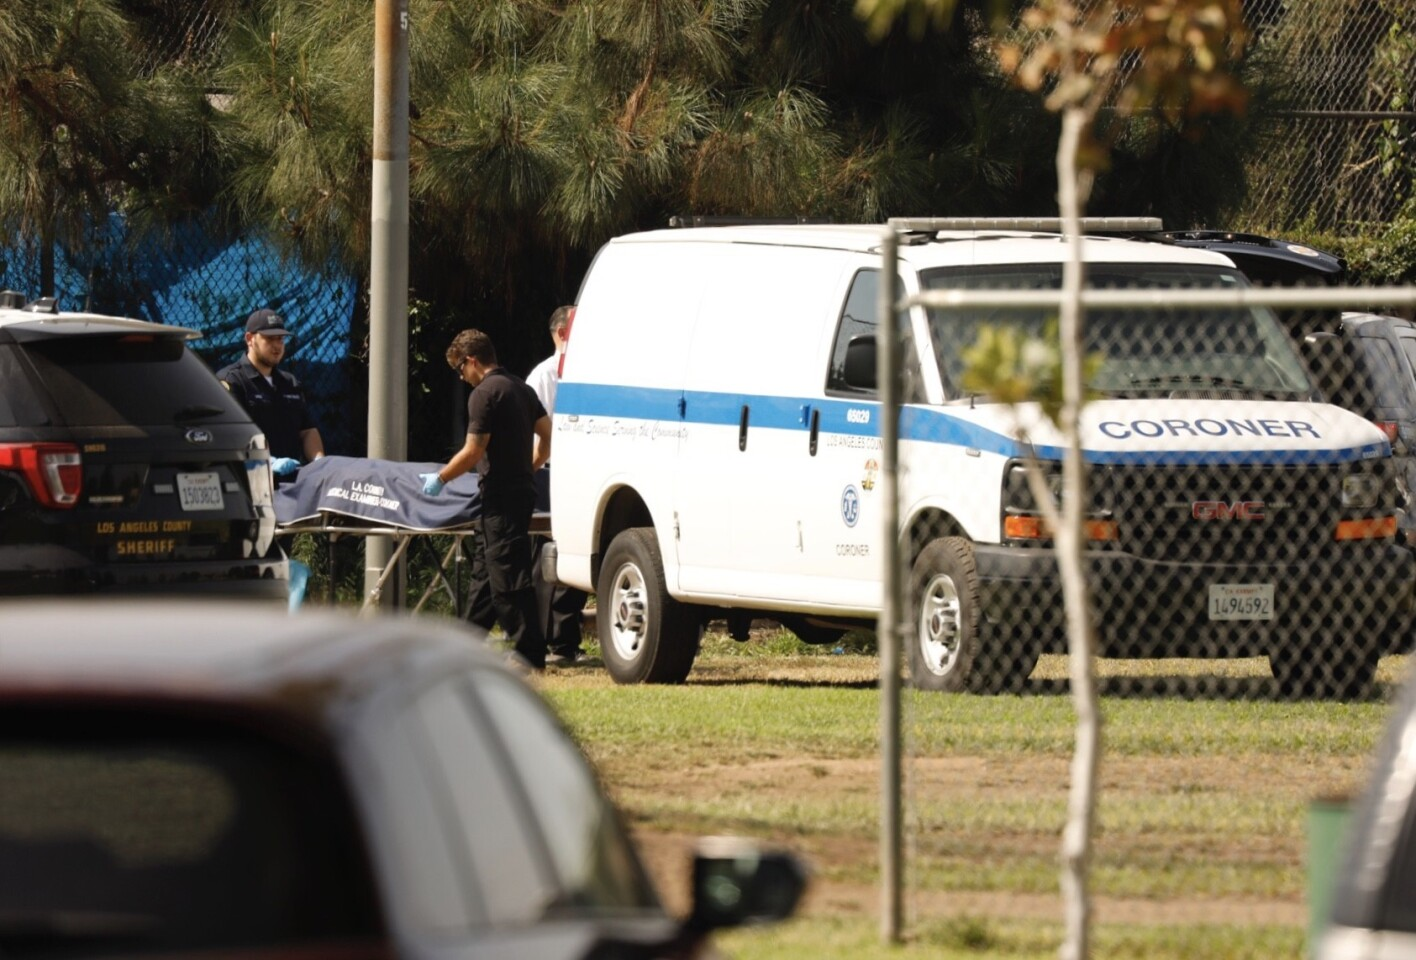 Los Angeles County coroner's officials remove the body of a man killed in a gun battle with sheriff's deputies in East L.A. on Wednesday.